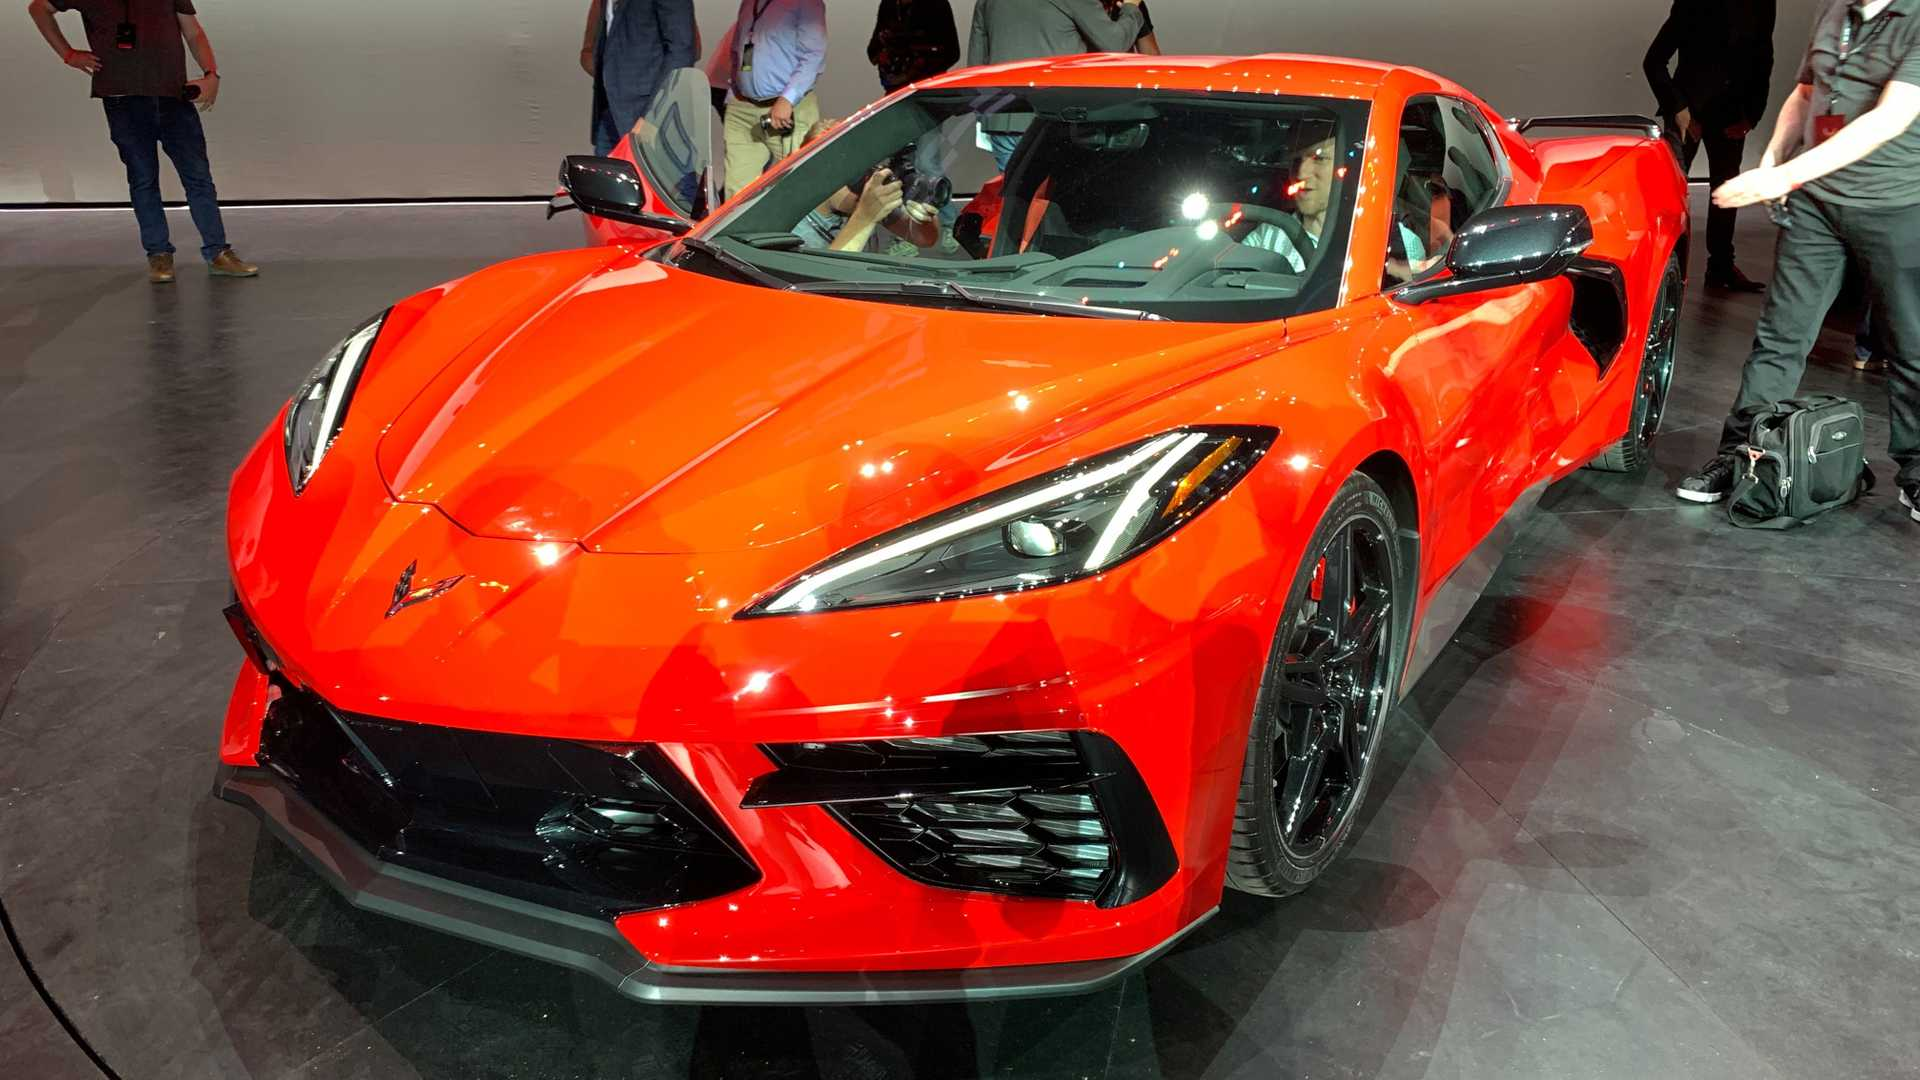 33 New Chevrolet Corvette 2020 Price by Chevrolet Corvette 2020